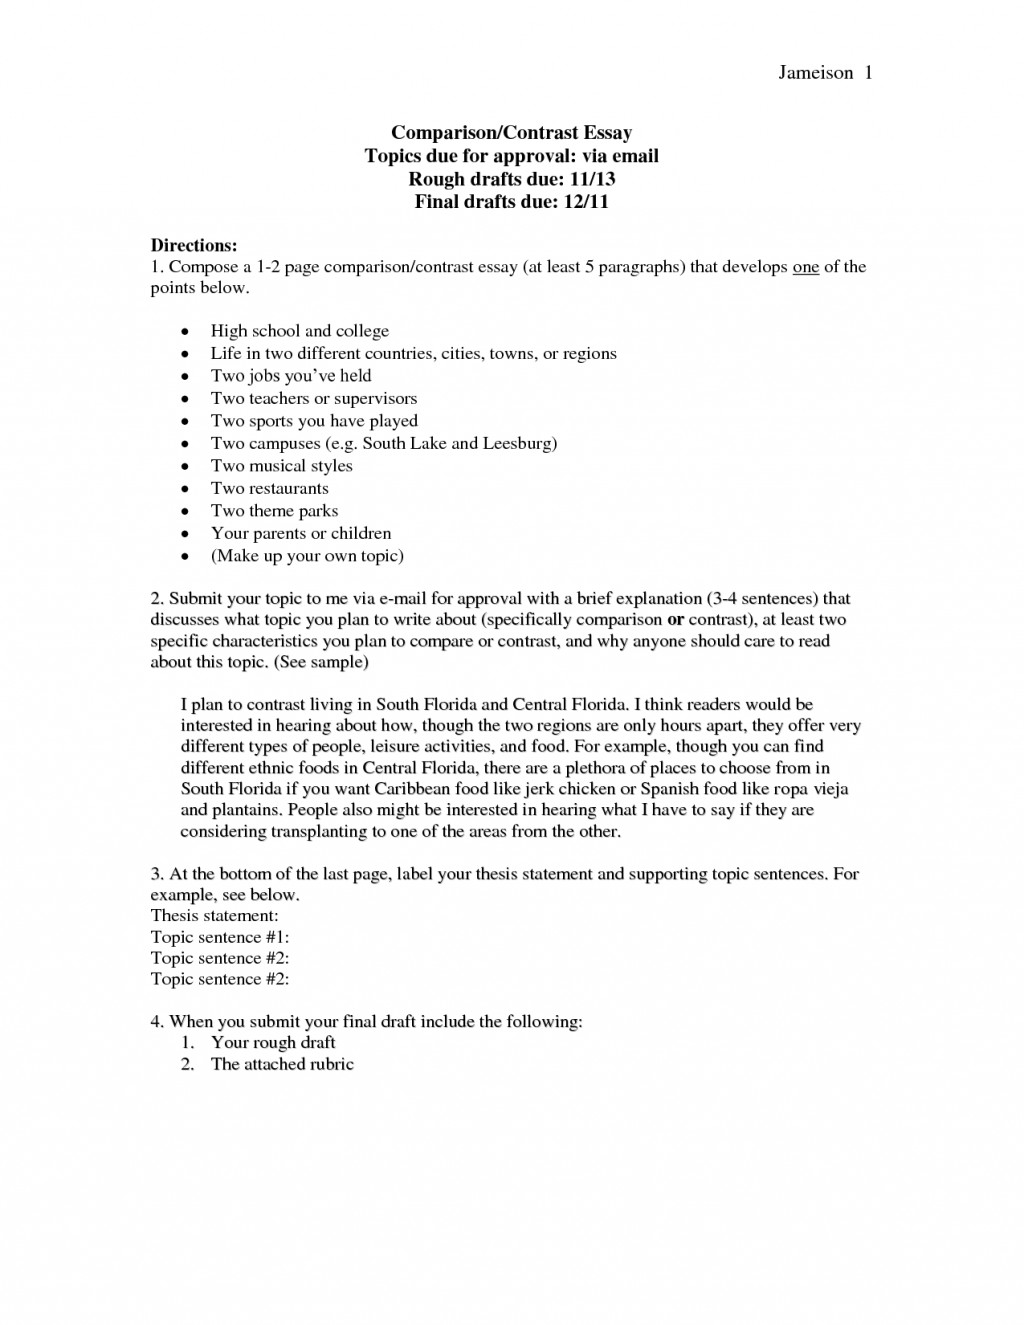 012 Compare Contrast Essay Examples Example For College Essays Format Of High School Vs And Outline 4 3rd Grade 4th 6th Pdf Block Middle Food Unusual Comparison Topics Large